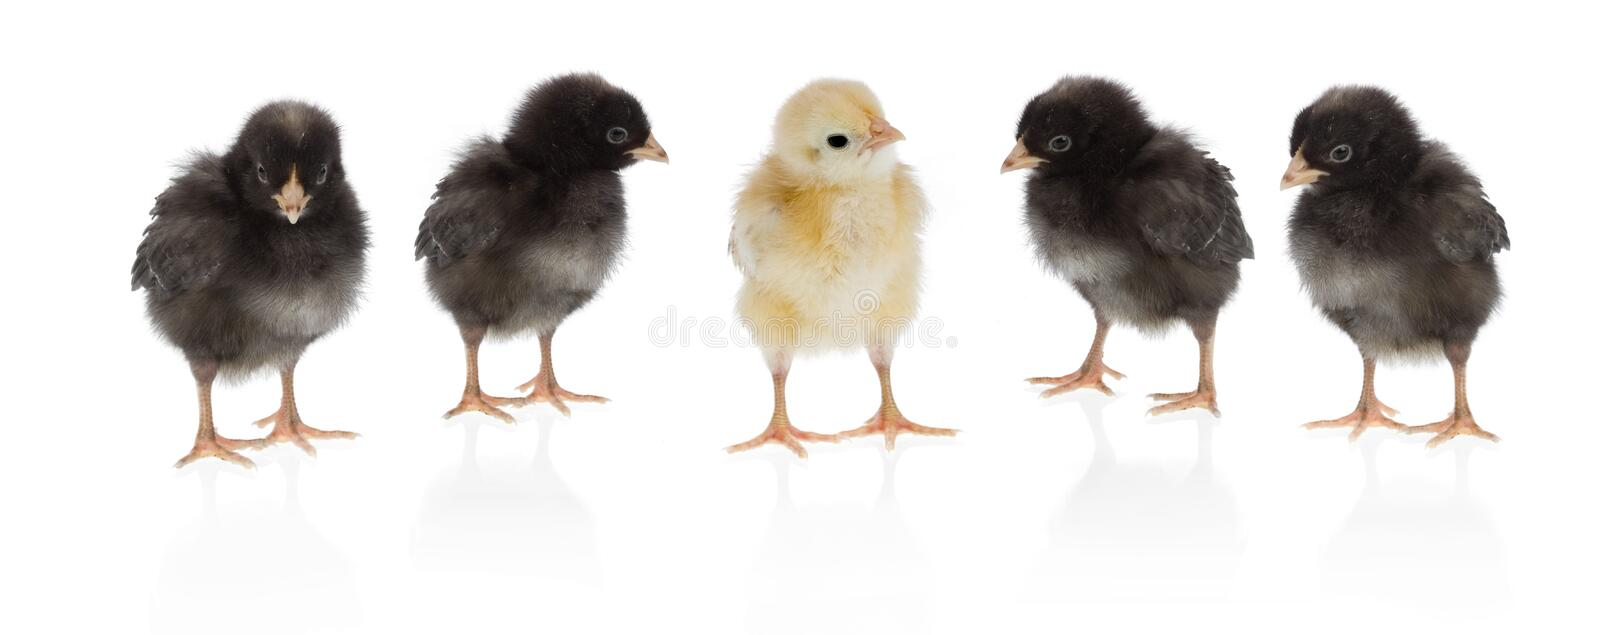 Unique chicken stock photos